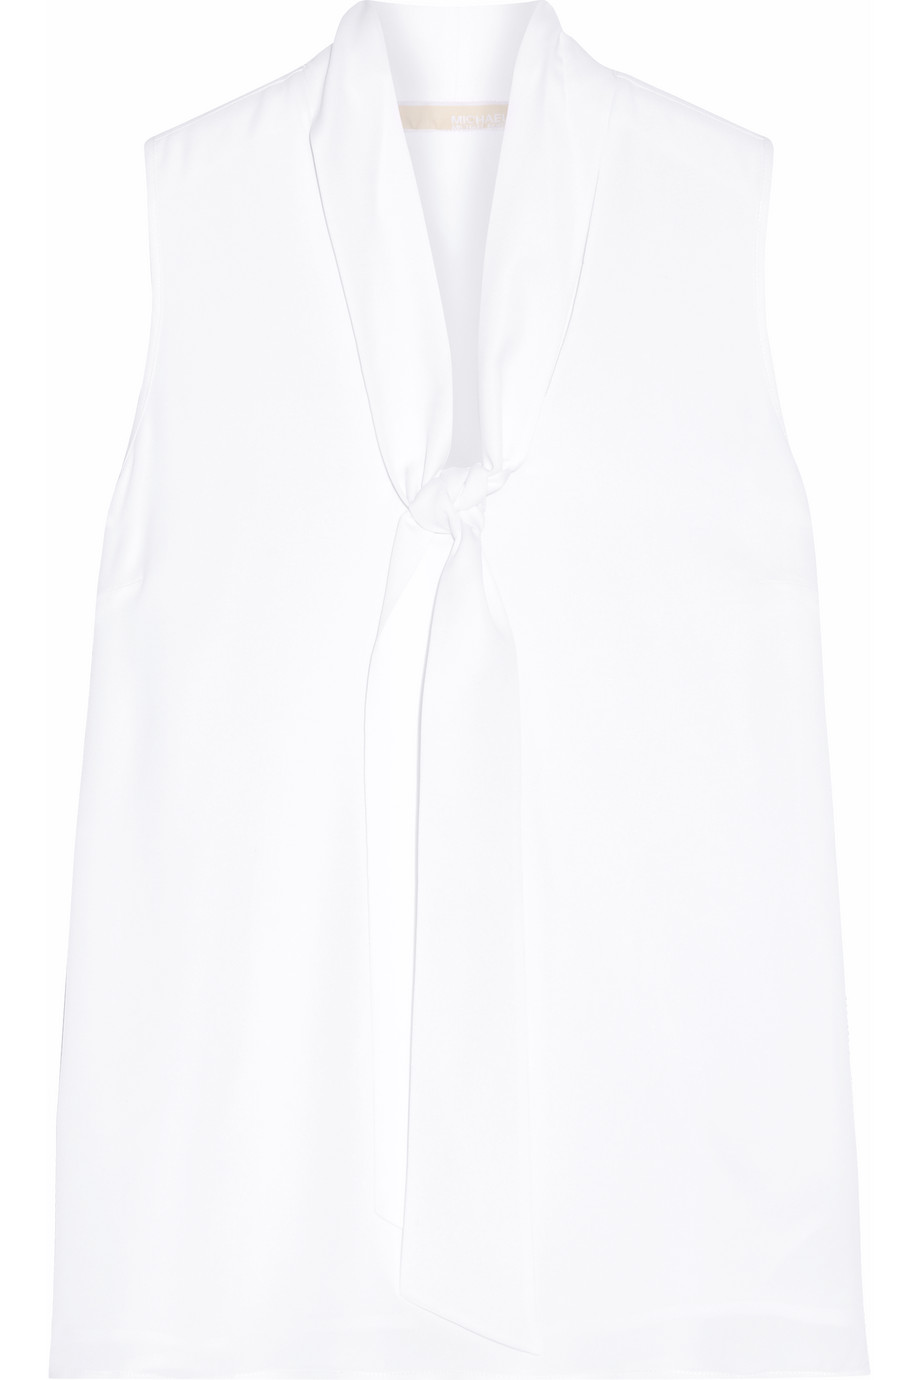 Pussy-Bow Silk-Georgette Top, Michael Michael Kors, White, Women's, Size: 12